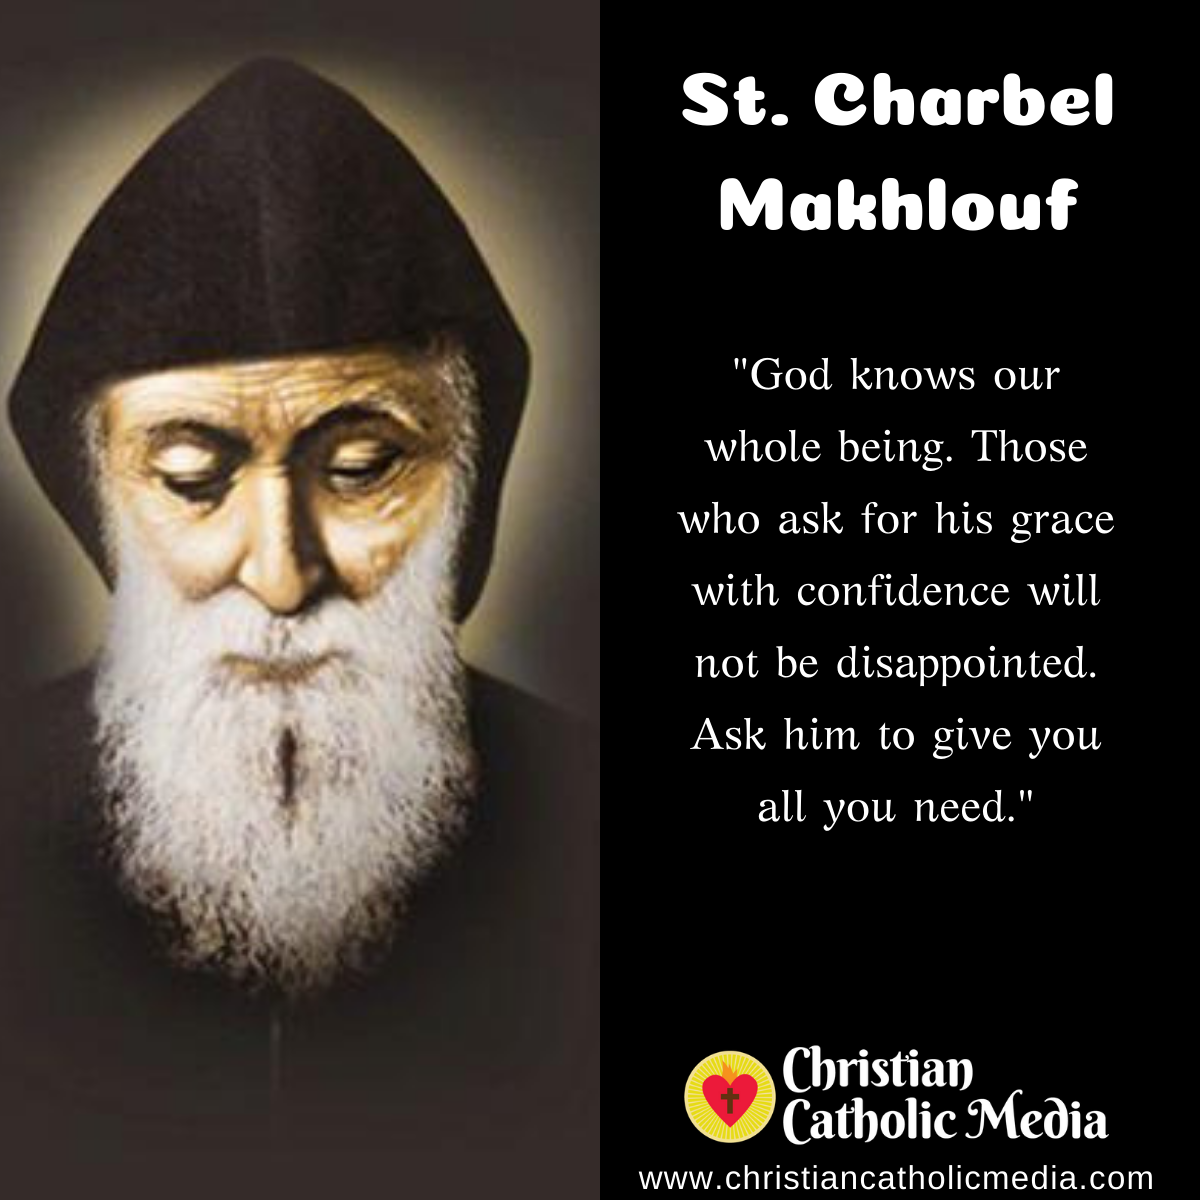 St. Charbel Makhlouf - Friday July 24, 2020